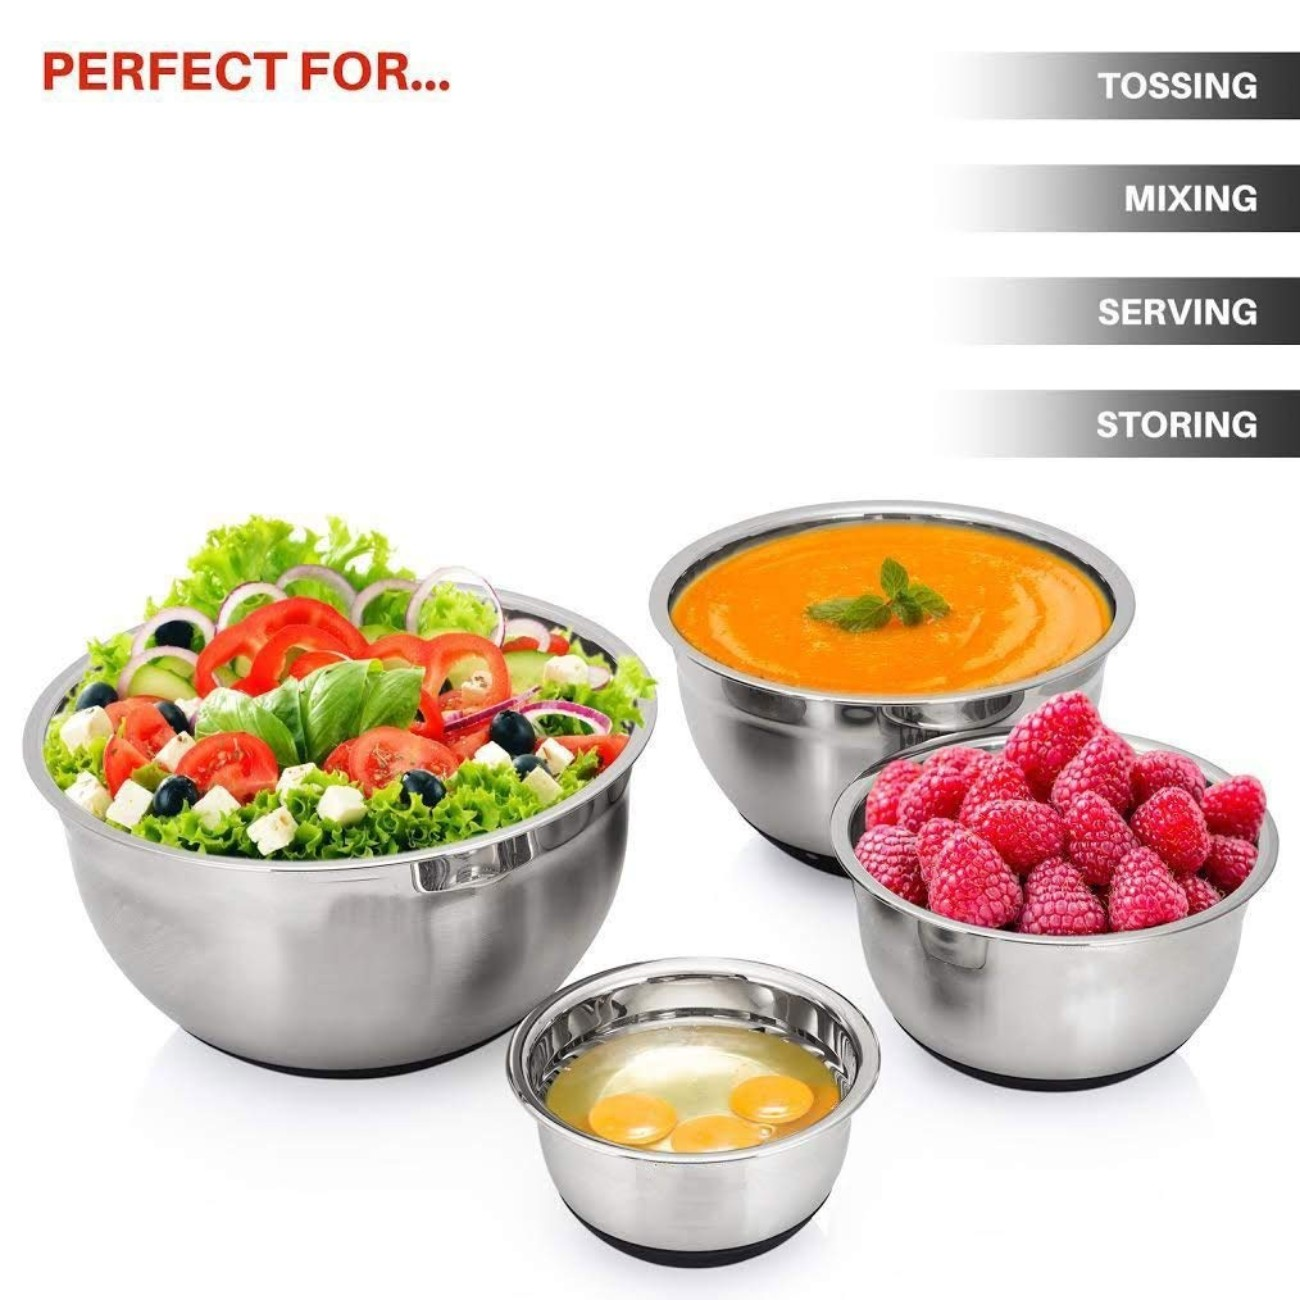 Stainless Steel Non-Slip Mixing Bowls with Lids Anti Slip Bottom Bowl